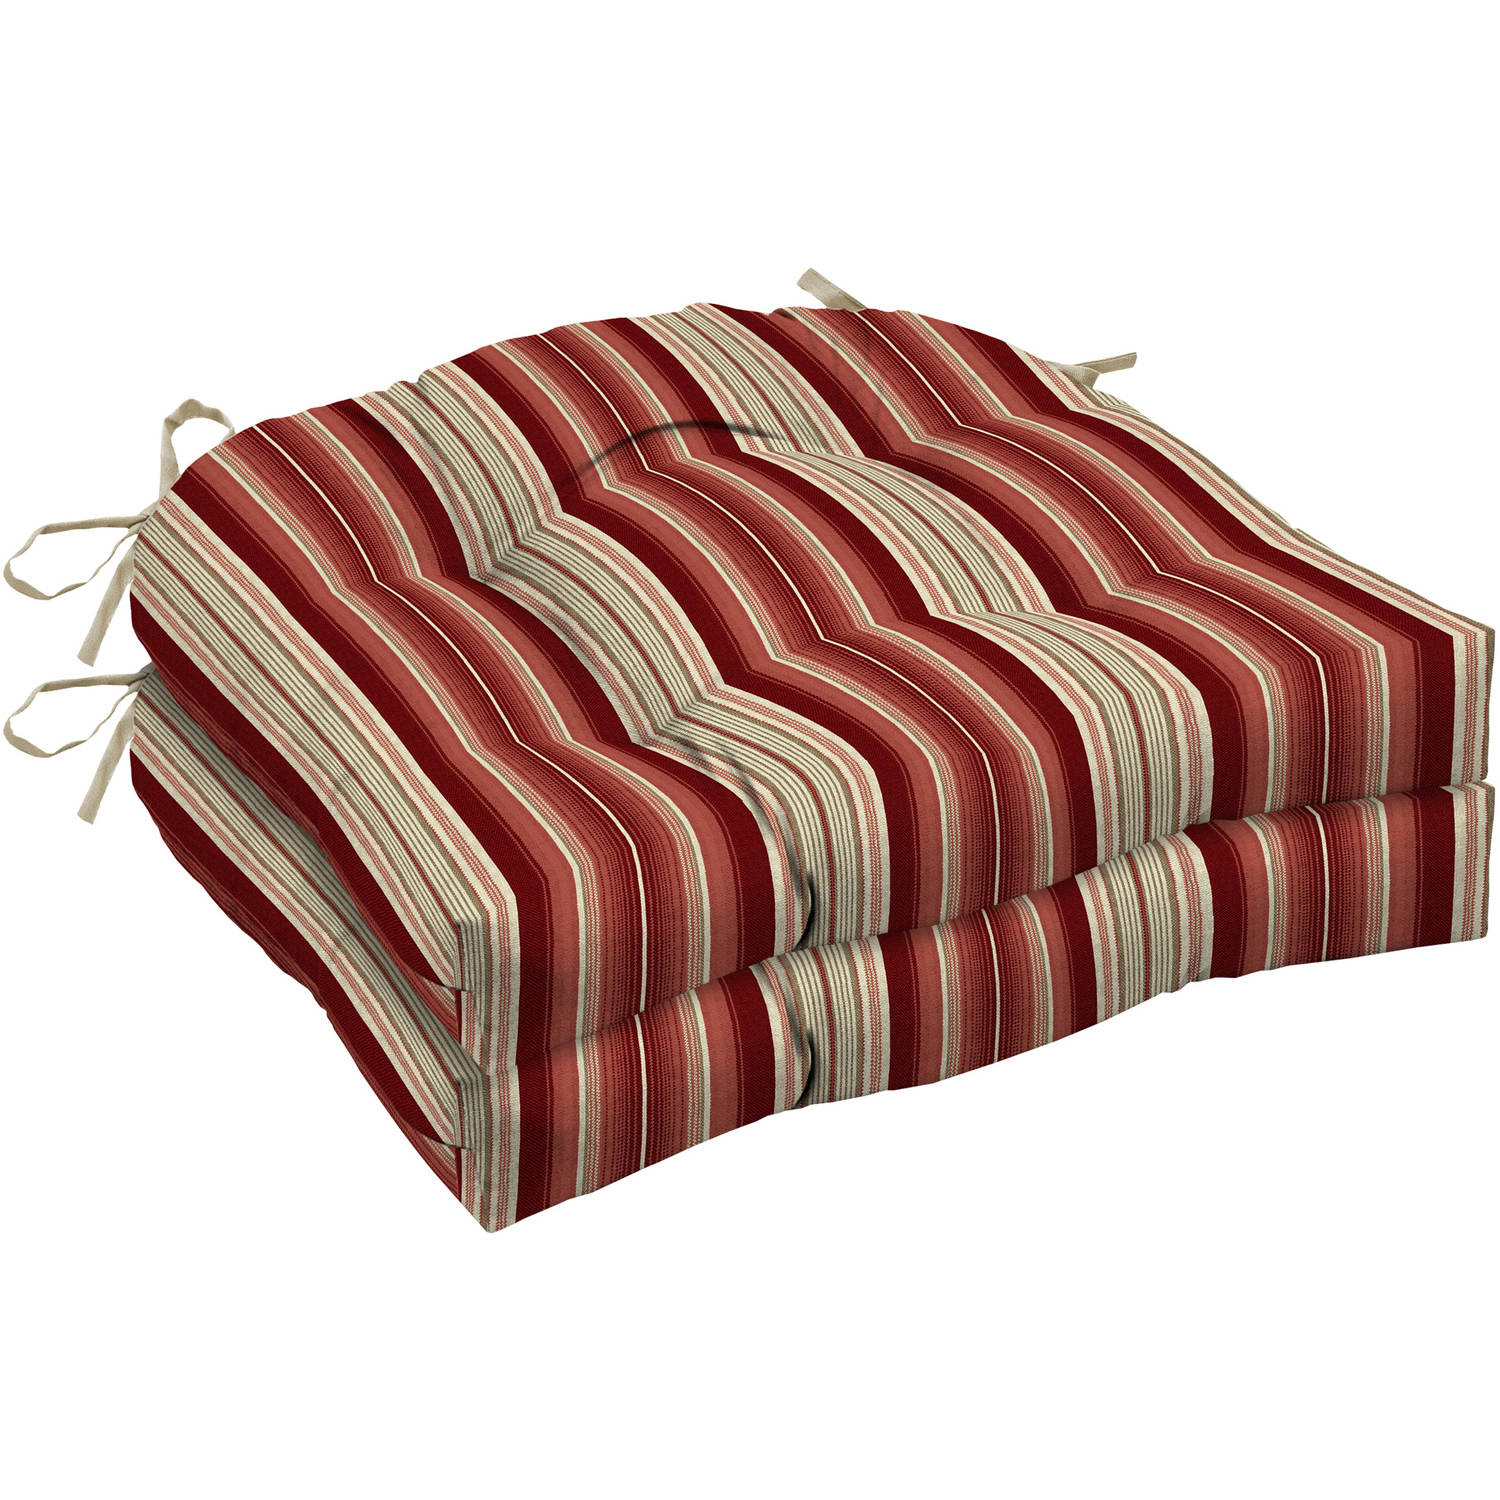 Better Homes and Gardens Outdoor Patio Wicker Seat Cushion, Set of Two, Multiple Patterns by Arden Companies